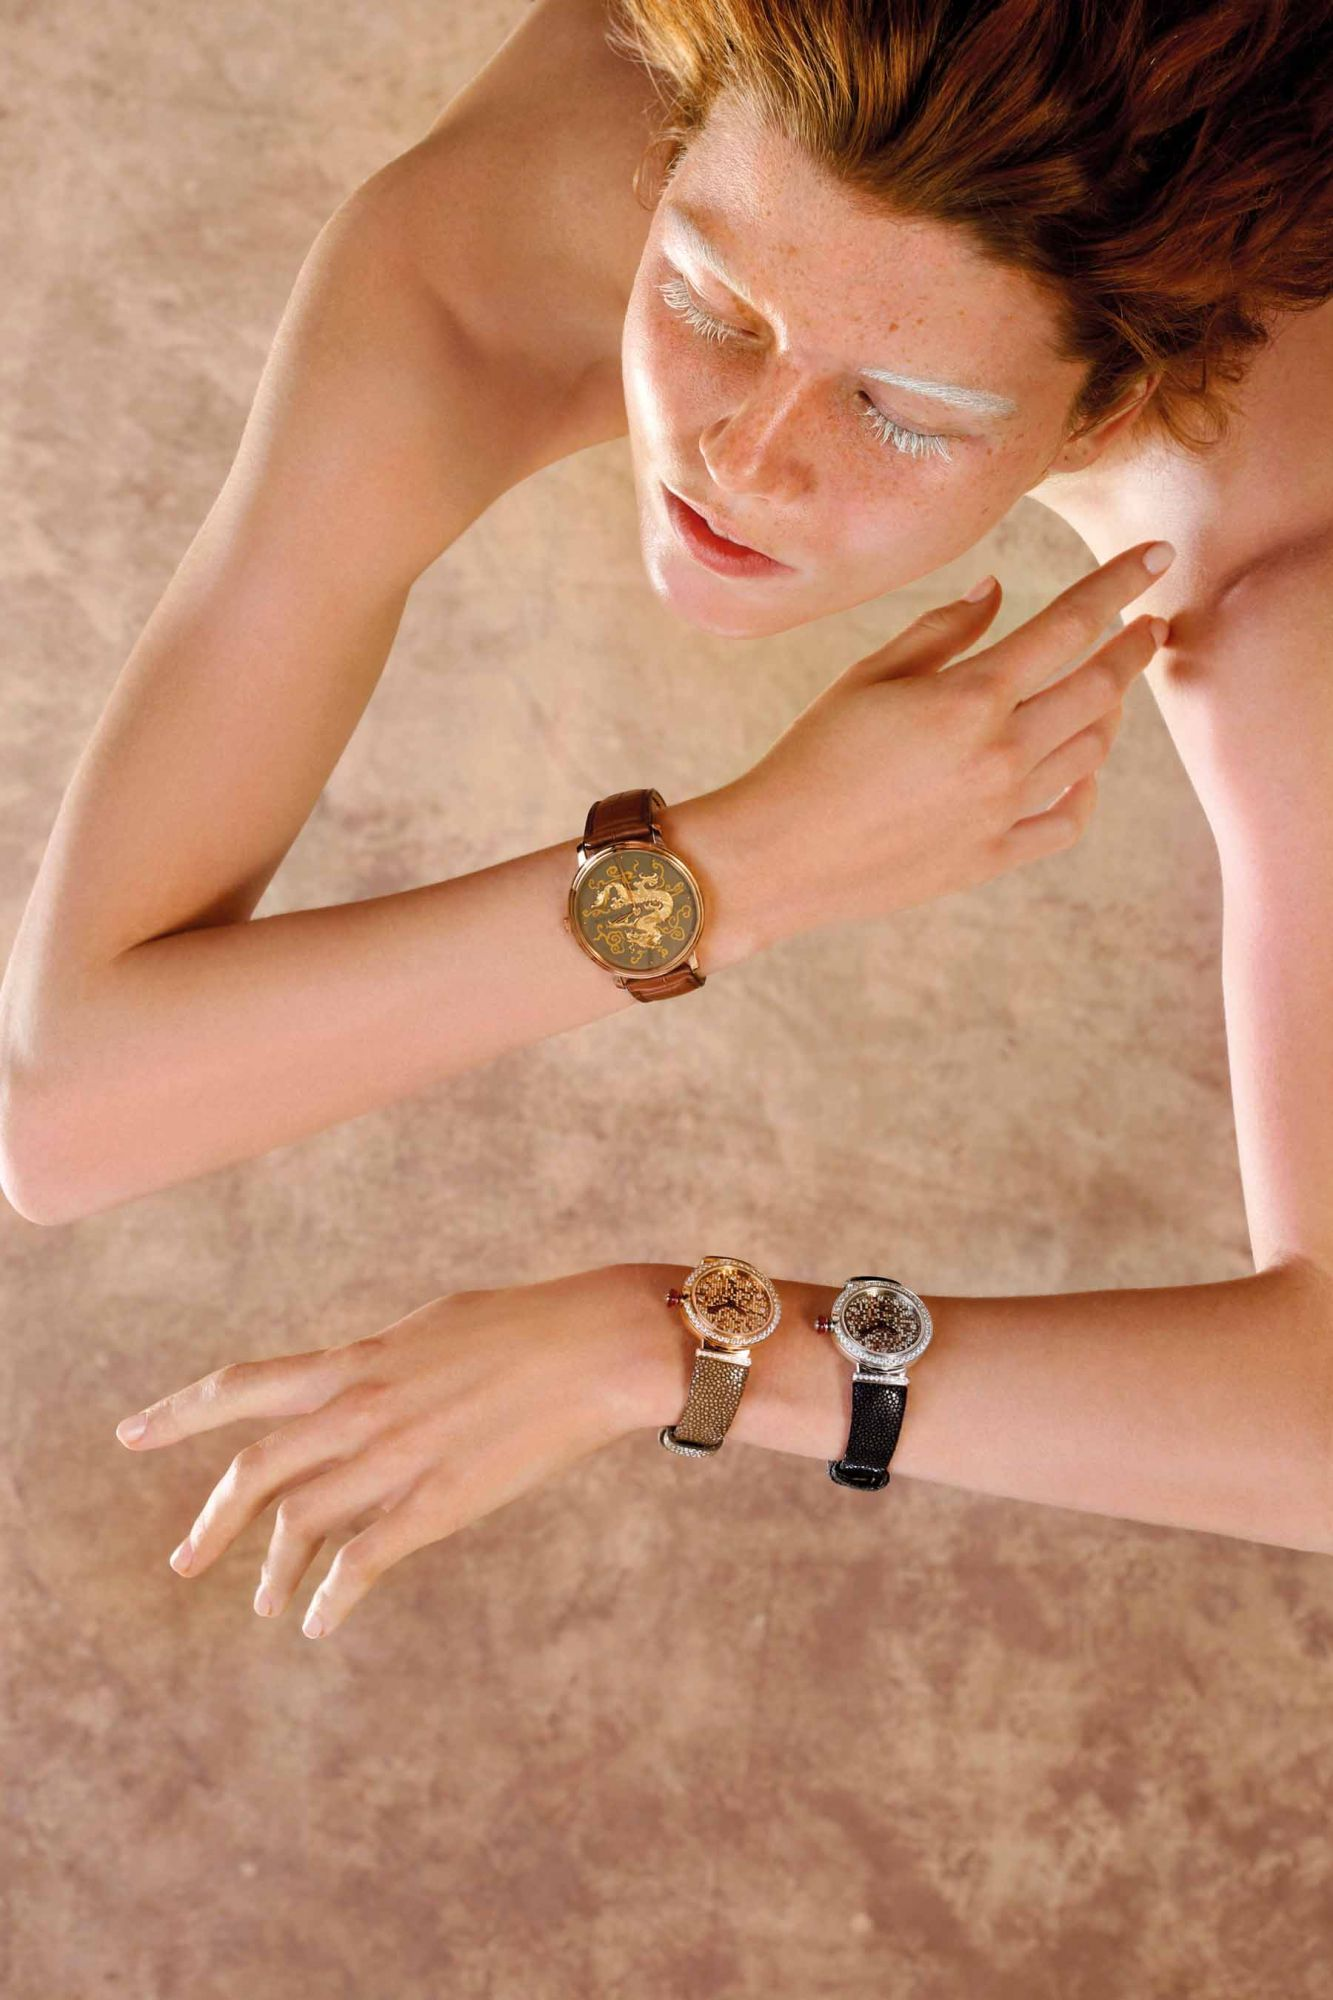 From left: Dragon watch by Blancpain | Lucea Mosaique watches in pink gold and white gold by Bulgari